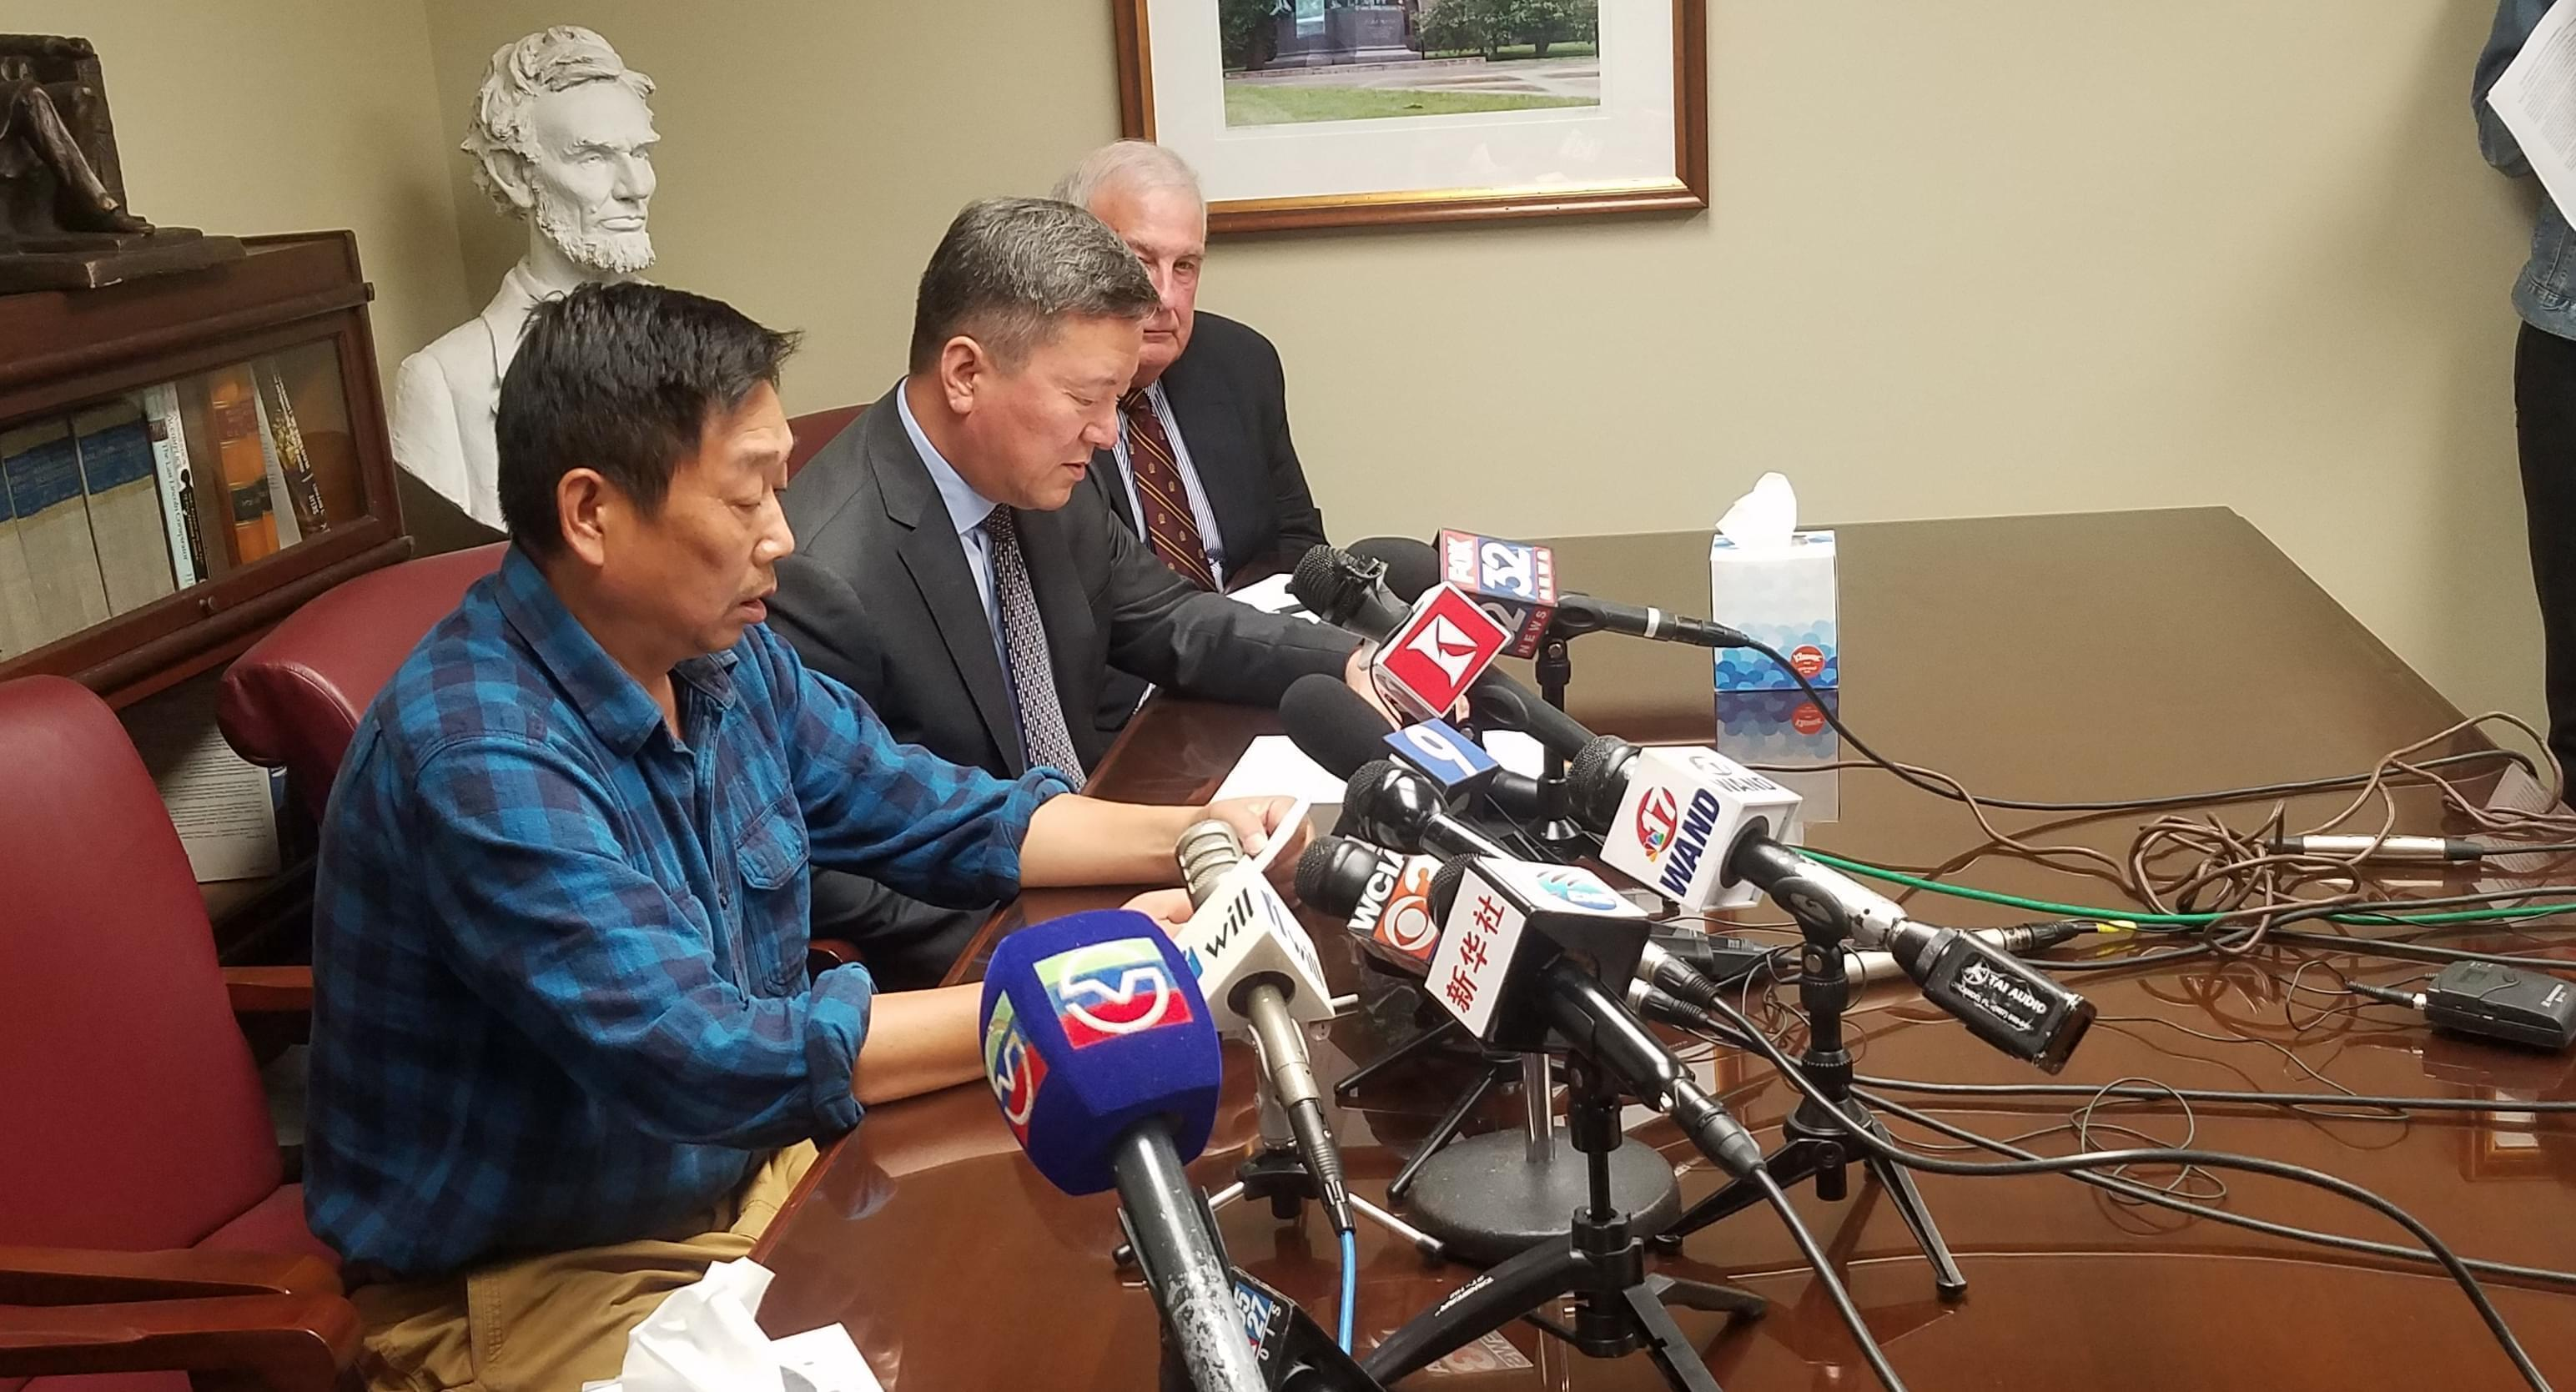 Ranggao Zhang, father of Yingying Zhang, reads a statement about the family's hopes for recovering her remains.